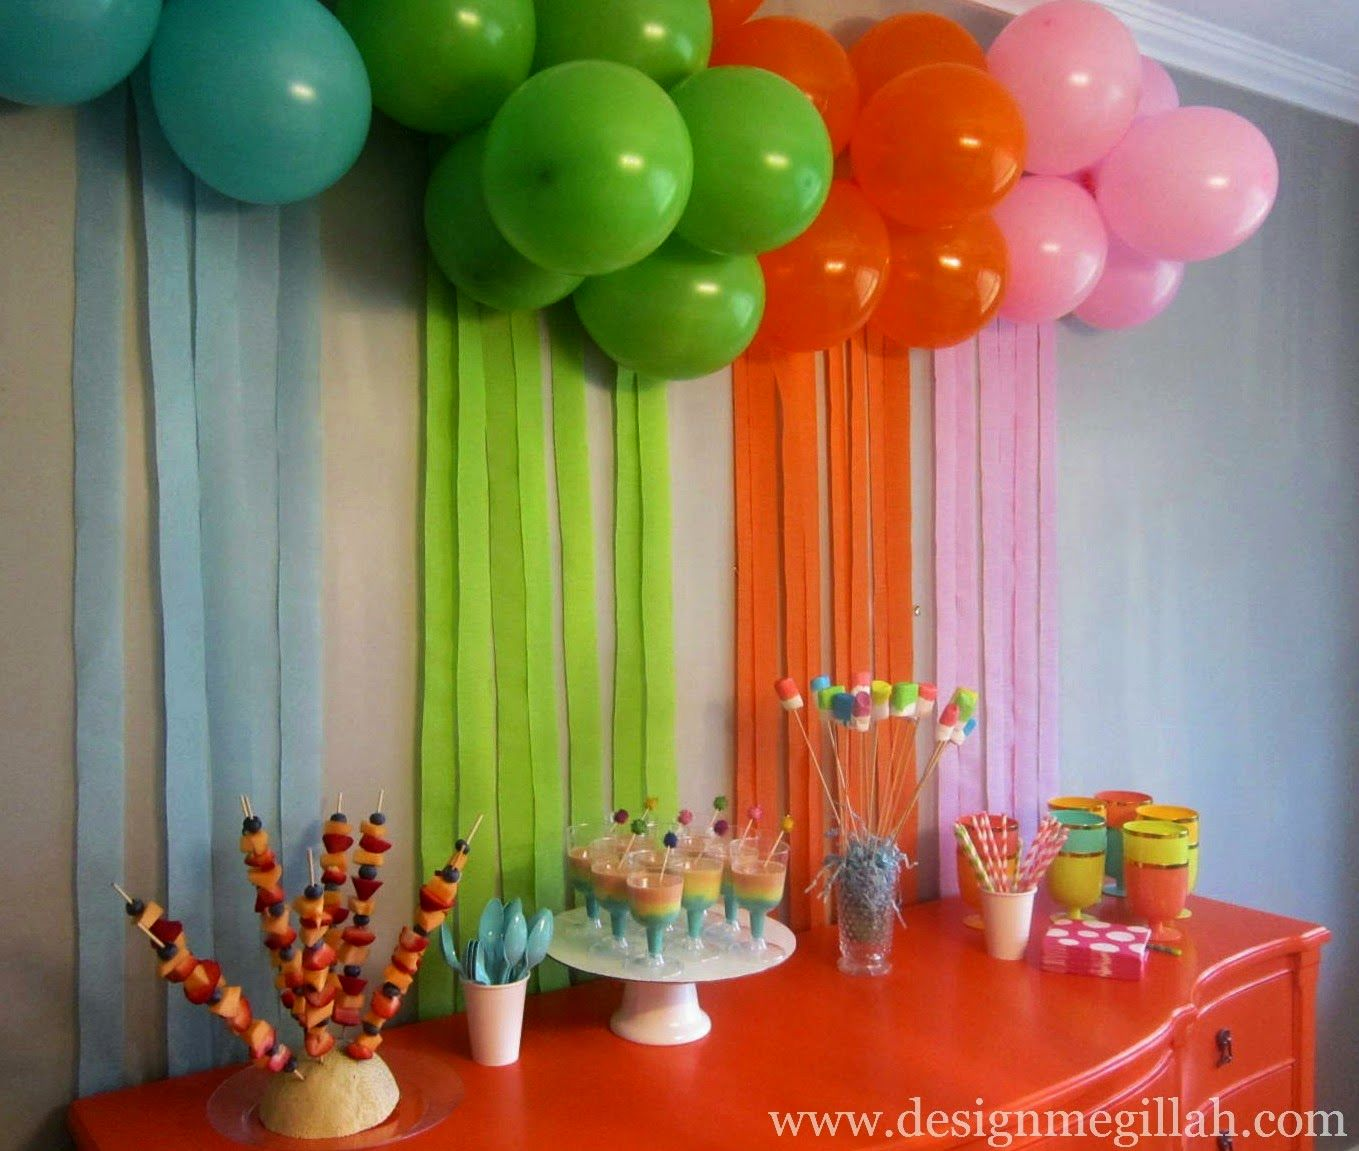 bday decoration ideas ; simple-birthday-party-ideas-at-home-bday-decoration-ideas-at-home-simple